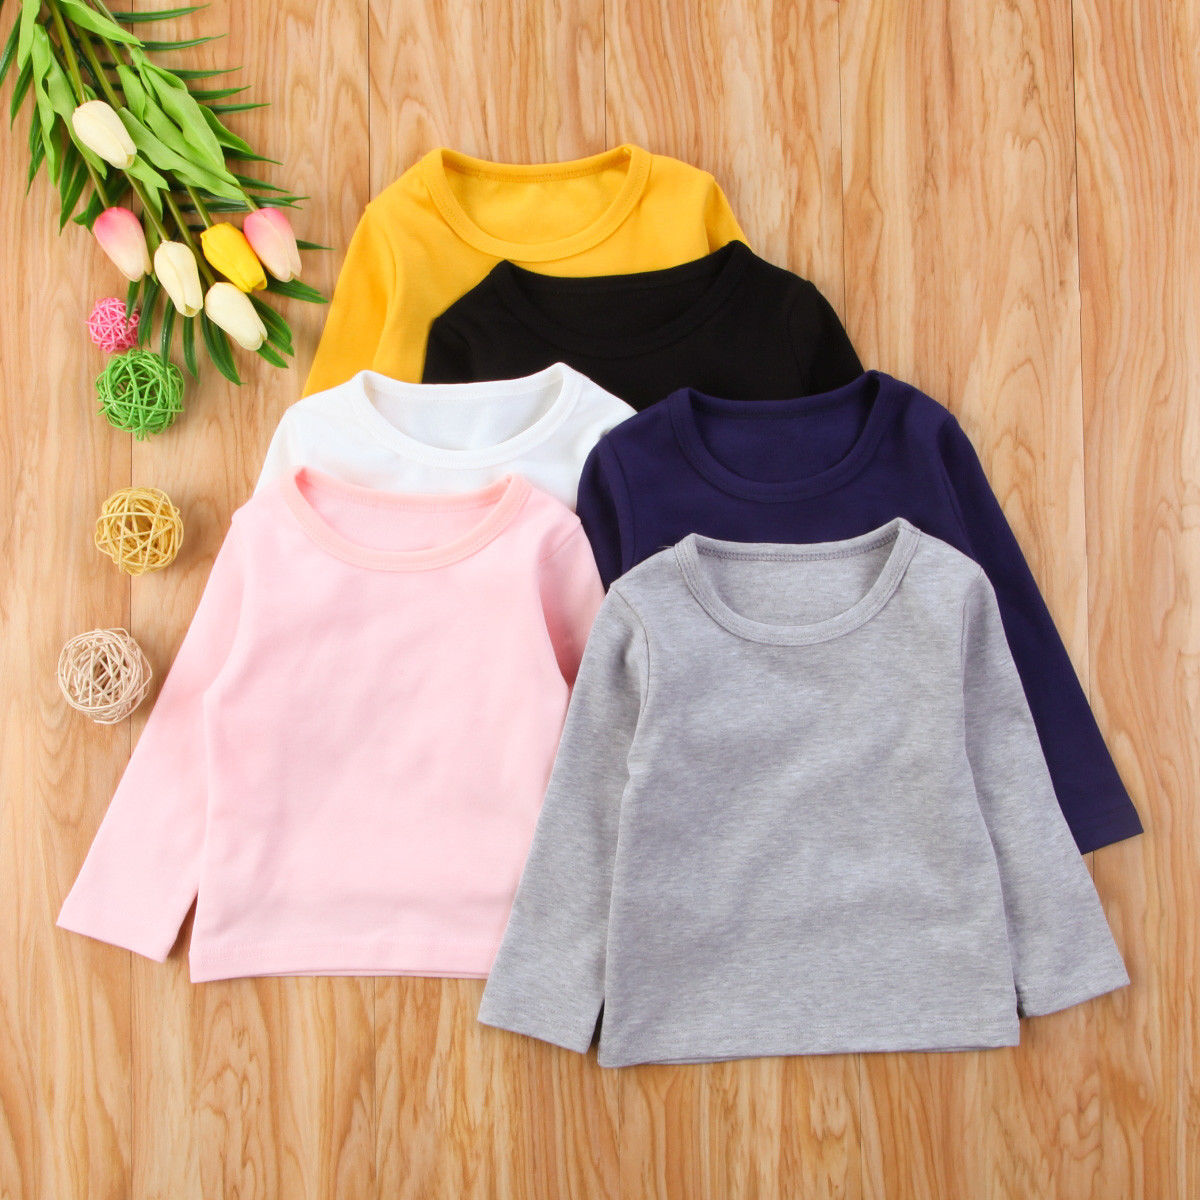 Outwear T-Shirt Tops Clothing Thermal-Underwear Toddler Infant Baby-Boys-Girls Kids Cotton